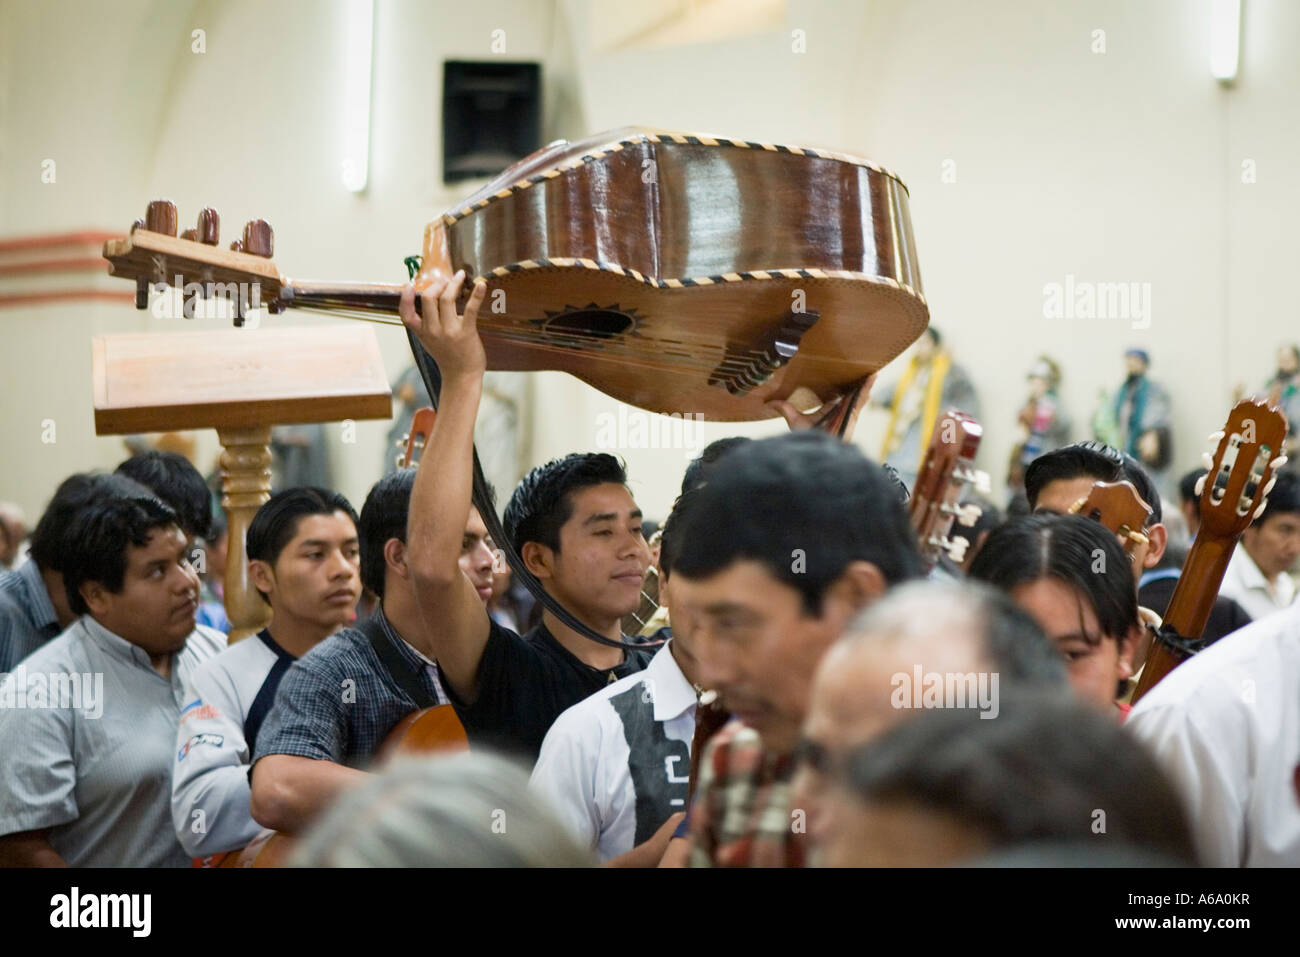 Carrying guitarron acoustic bass guitar out of church Santiago Atitlan Guatemala - Stock Image